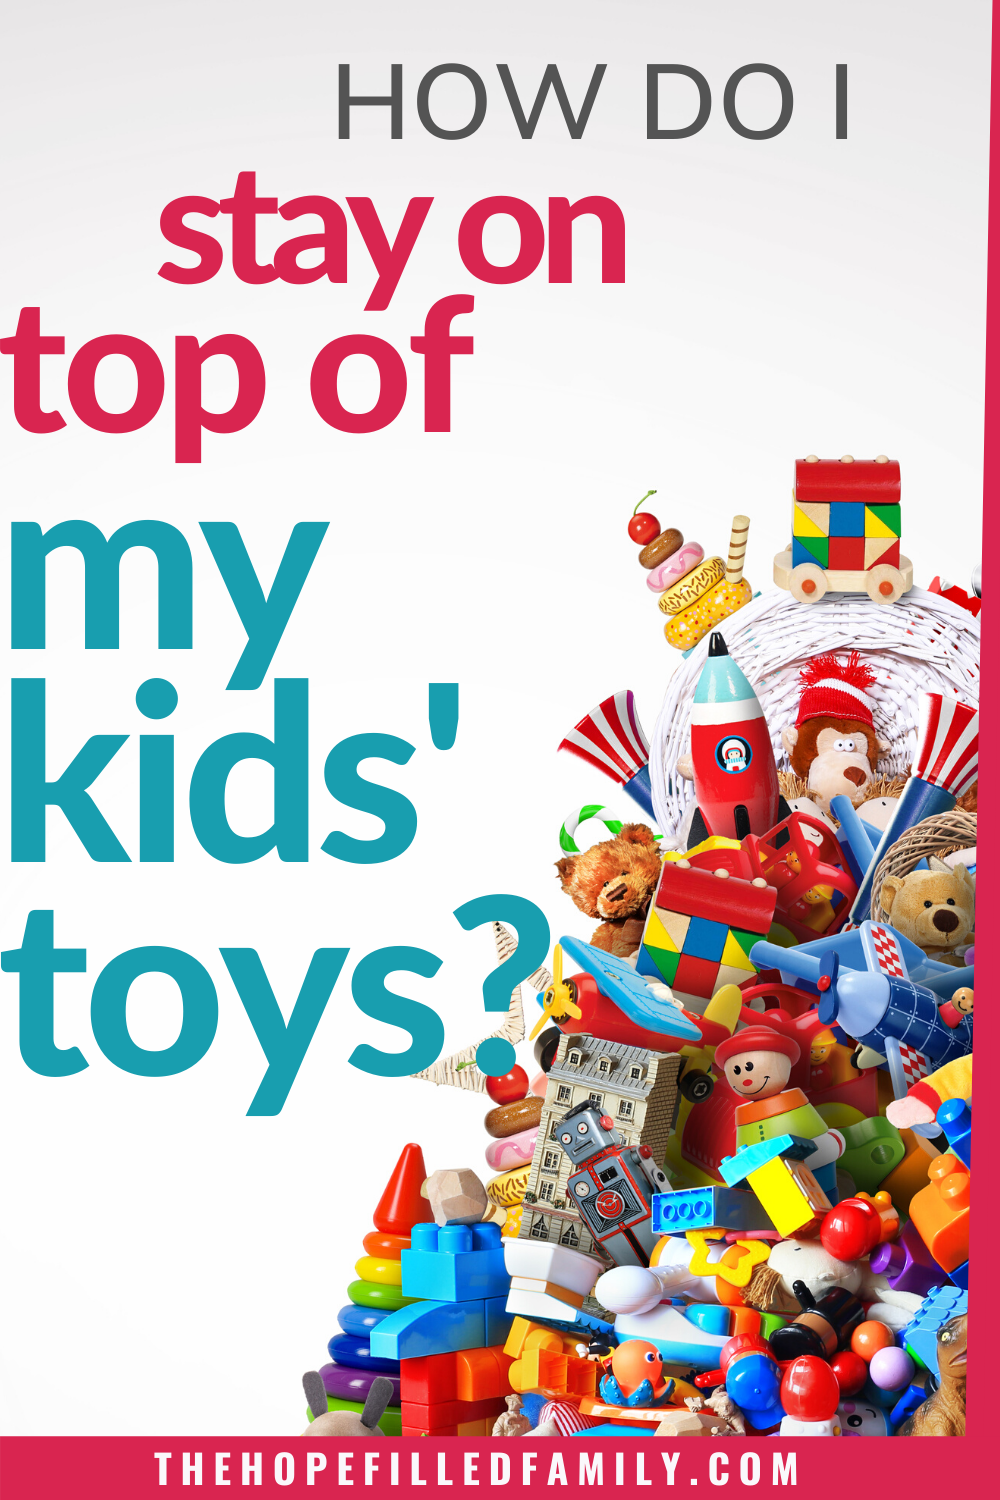 How do I stay on top of my kids' toys?